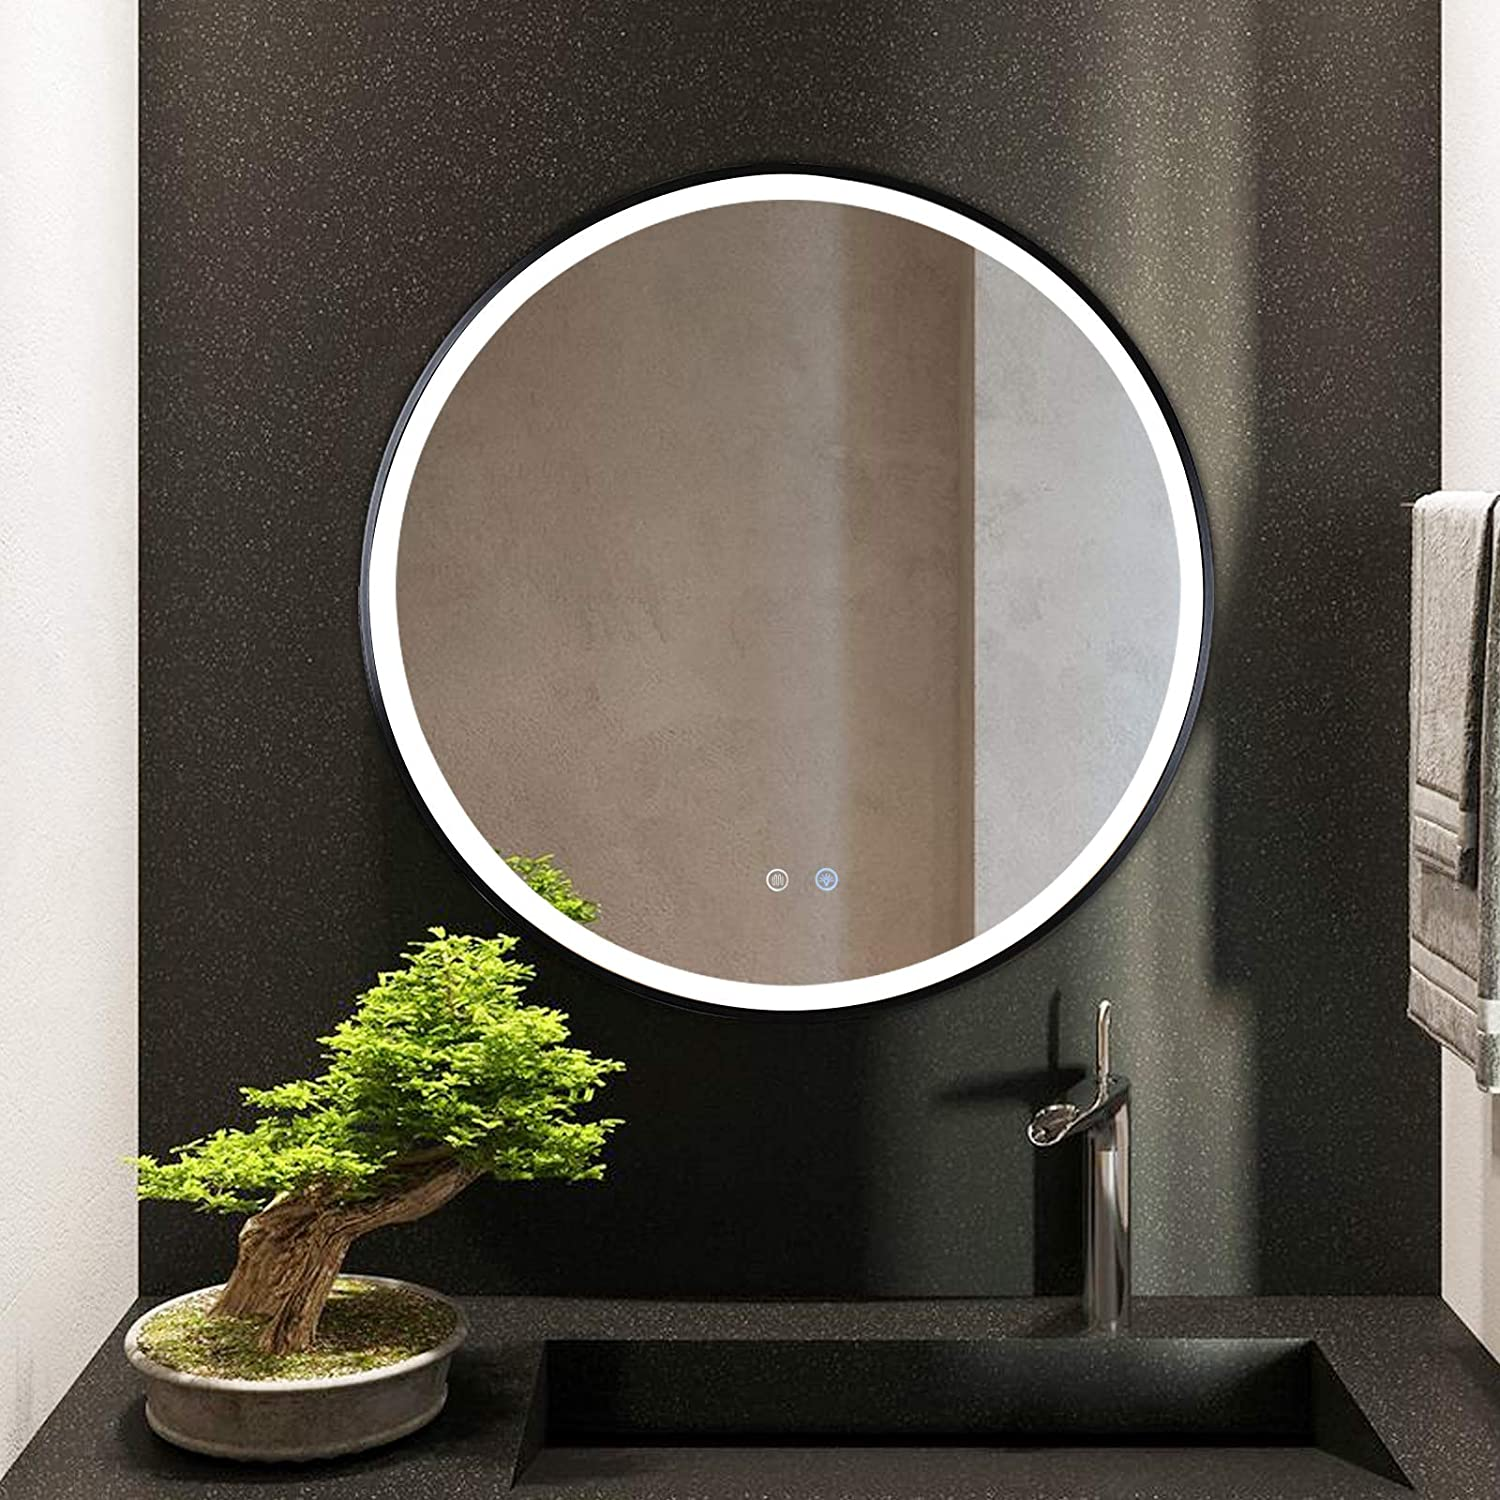 Buy 32inch Led Bathroom Mirror Modern Wall Mounted Makeup Mirror Round Black Solid Framed Bathroom Mirror Dimmable Vanity Mirror Water Proof Anti Fog 3000k 4000k 6000k 3colour Options By Cctswitch Gasonny Online In Taiwan B08r1s56wp